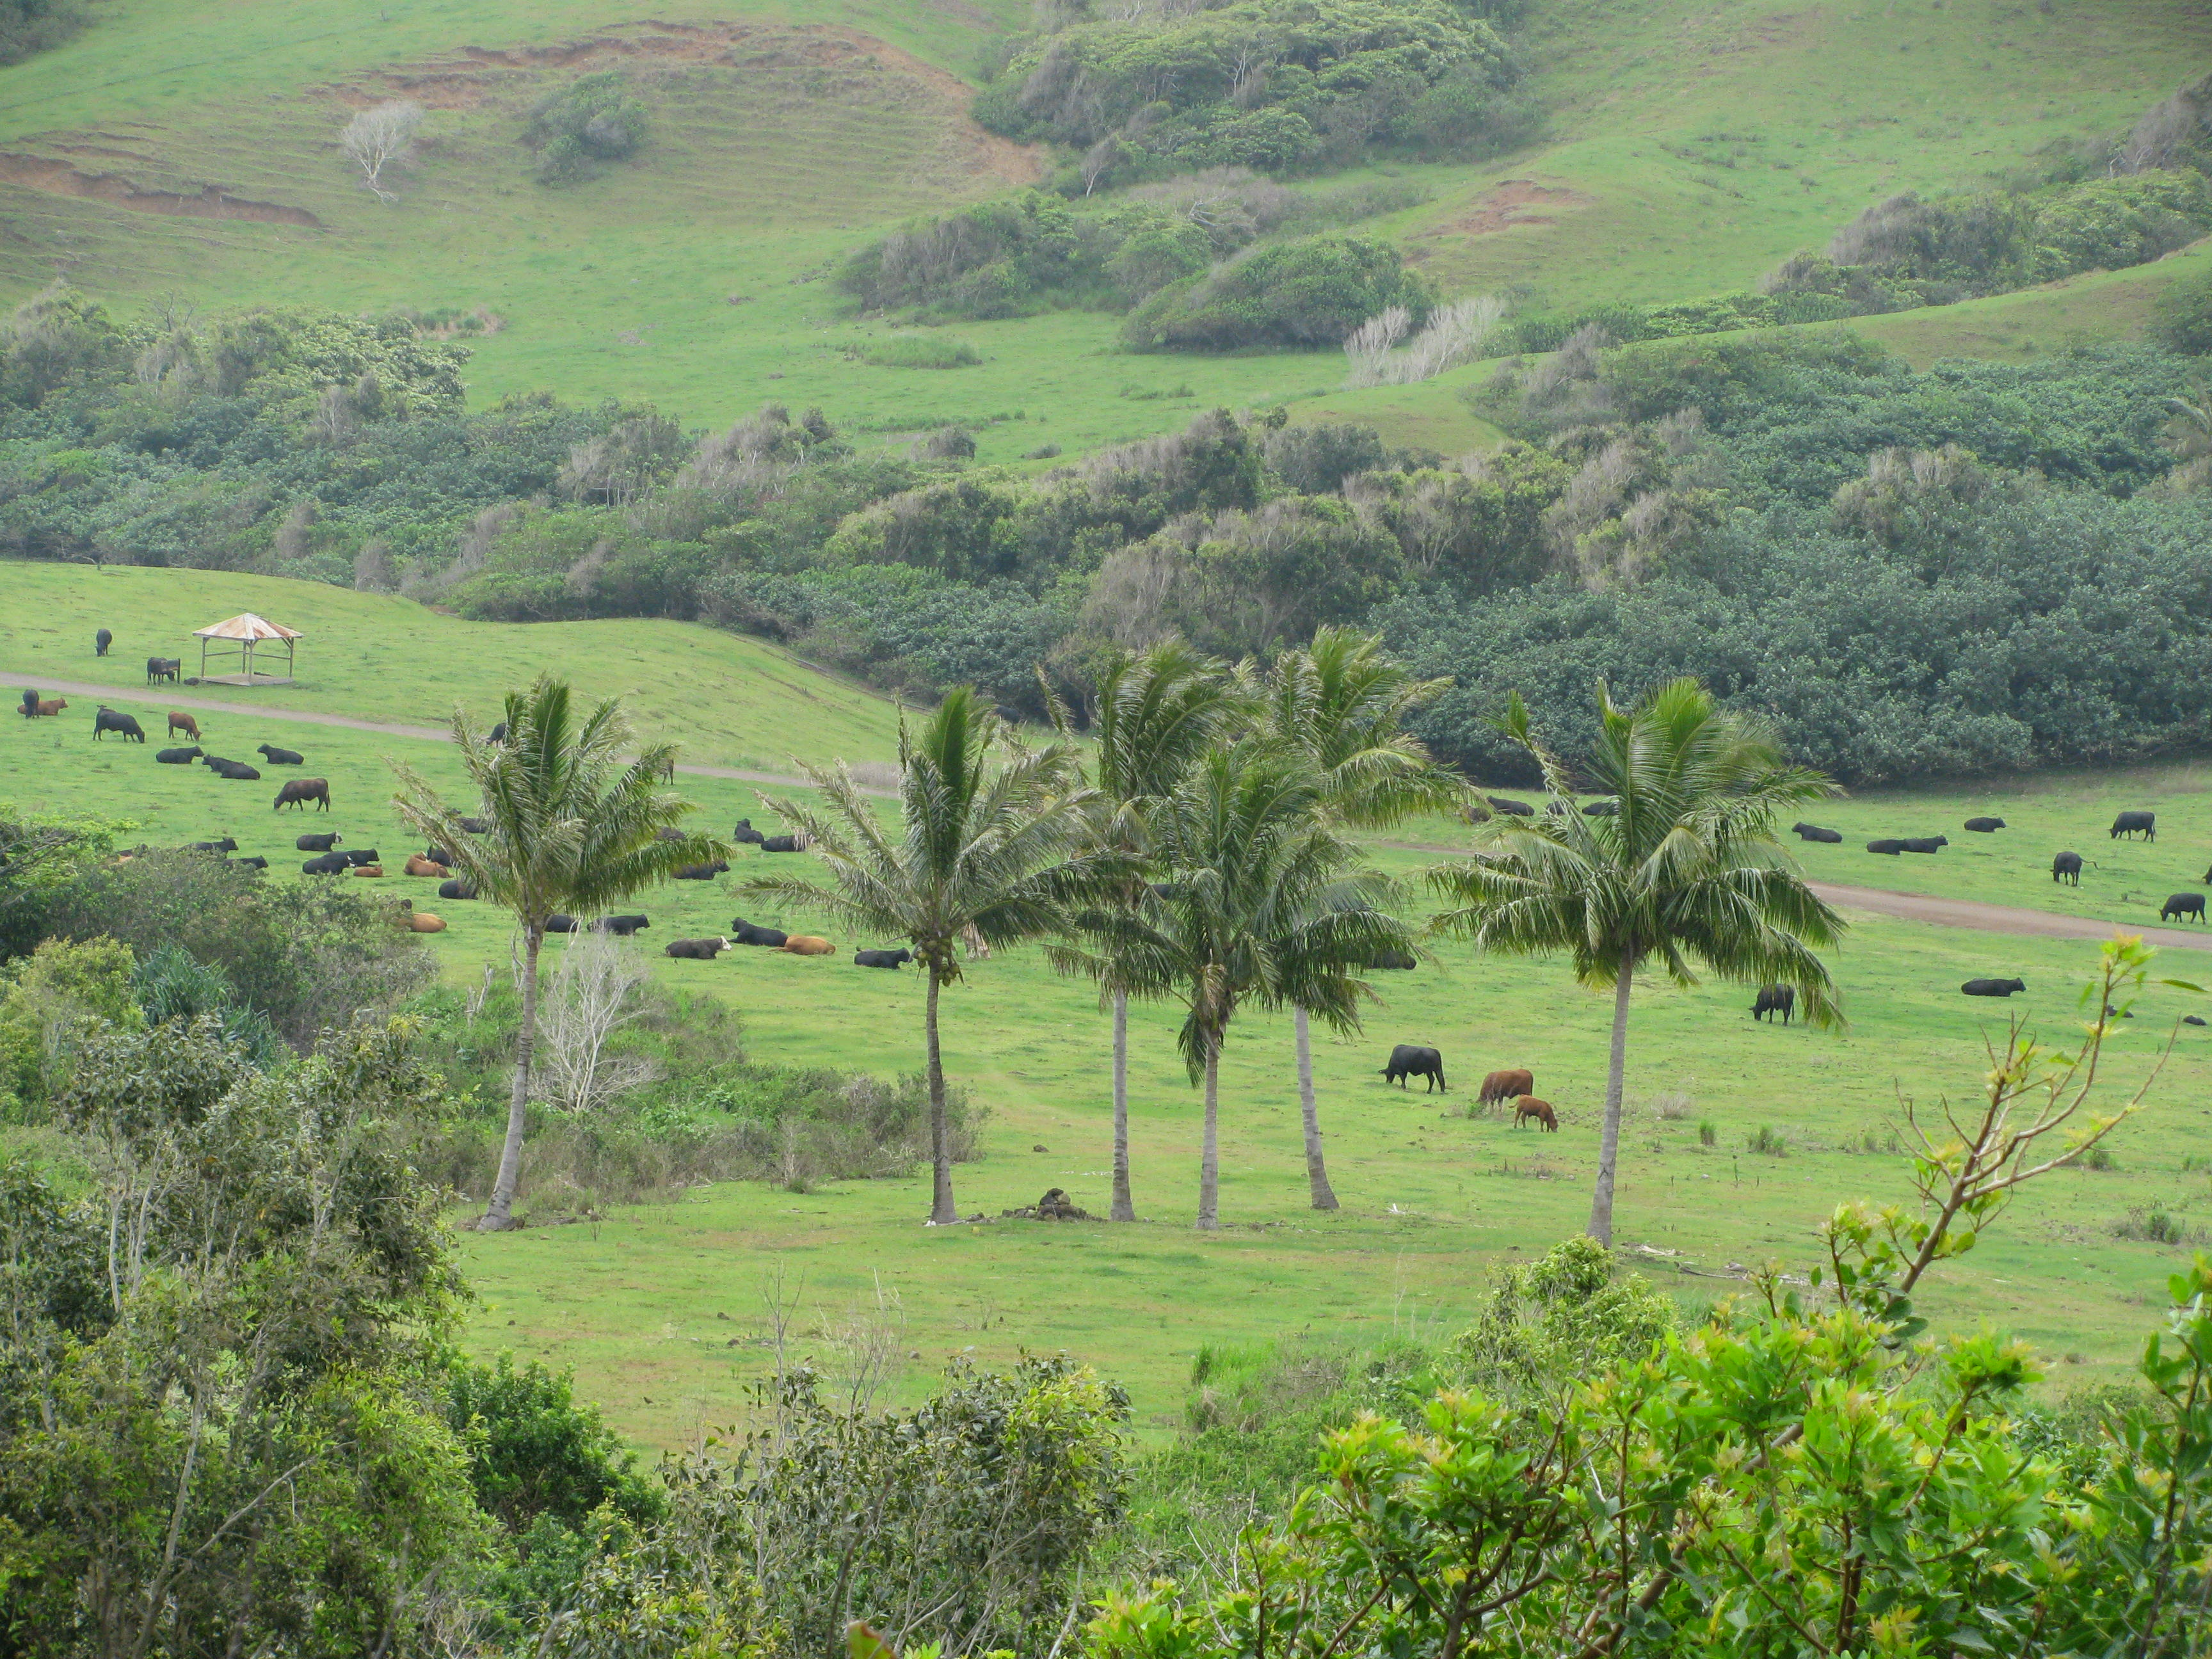 Kualoa Ranch, A Working Cattle Ranch